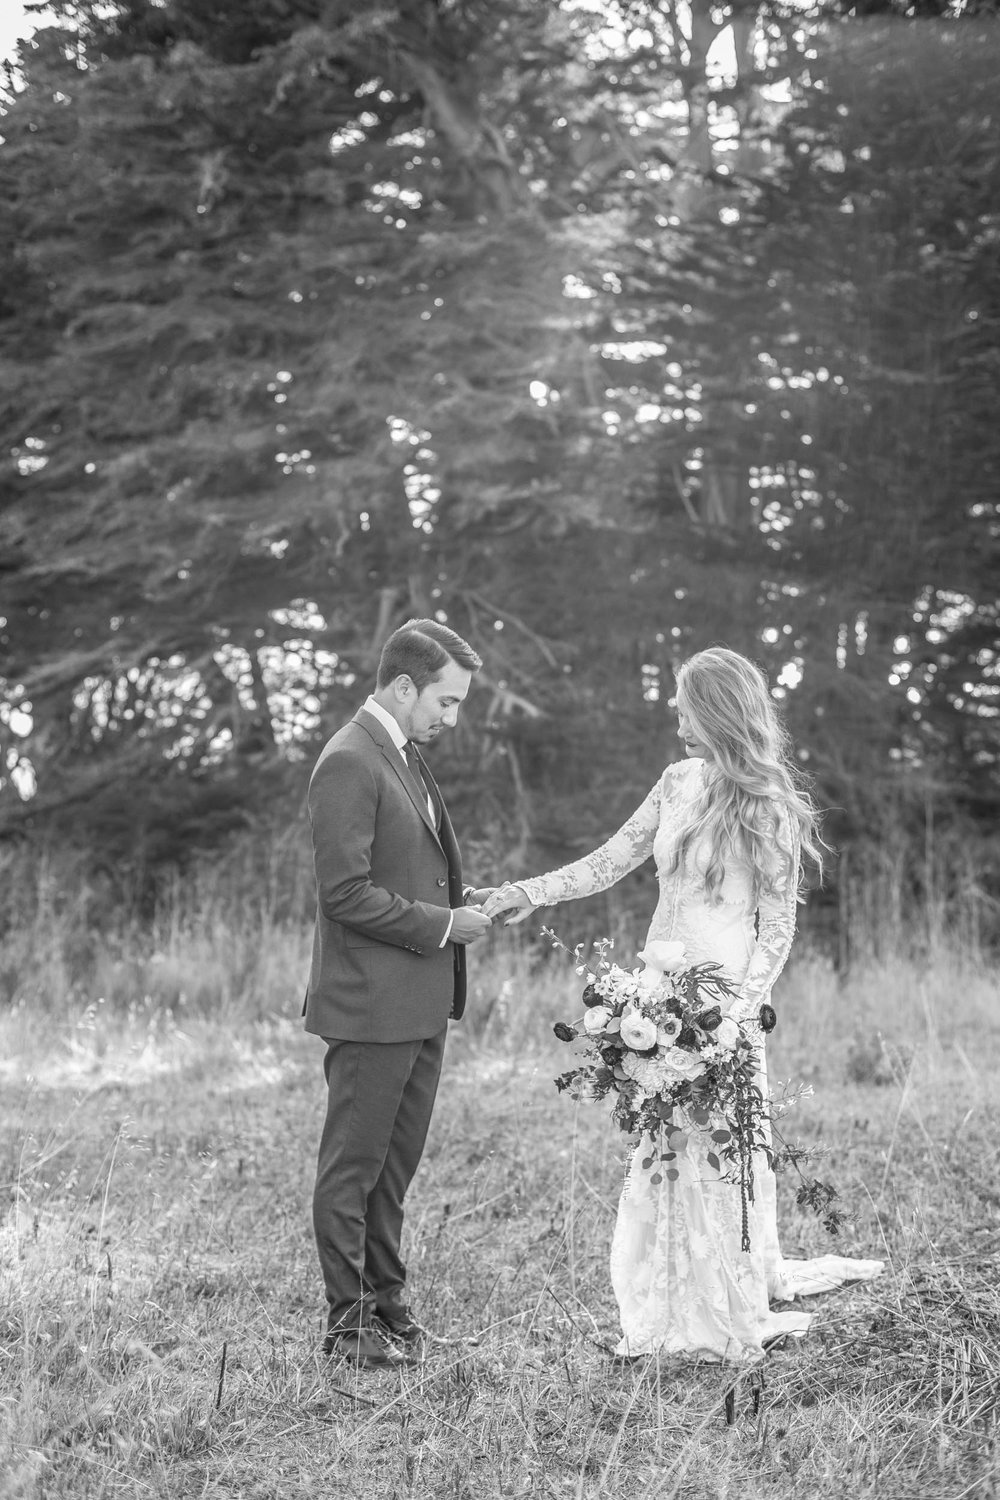 Freda Banks201609 WeddingCuffeys Cove Laura and Ryan41.jpg